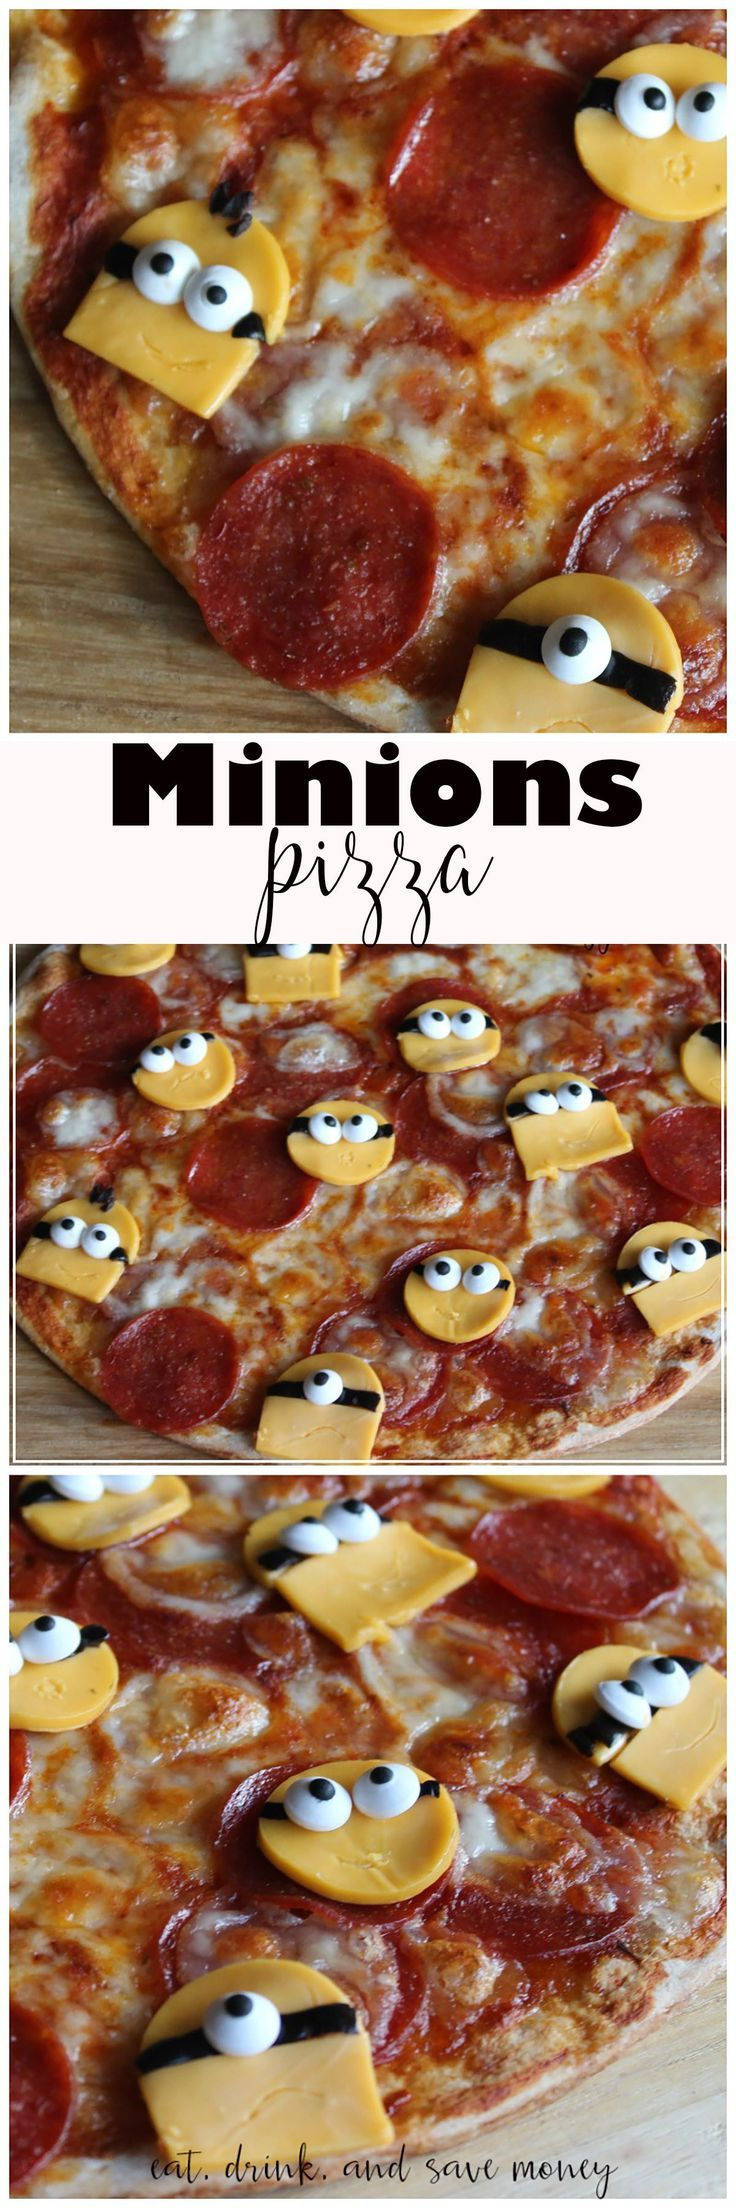 Minions Pizza is perfect for a family movie night. Watch Minions or the Despicable Me movies, and enjoy family time with delicious minions food. The pizza is easy to make with simple ingredients. It's fun for a party too!